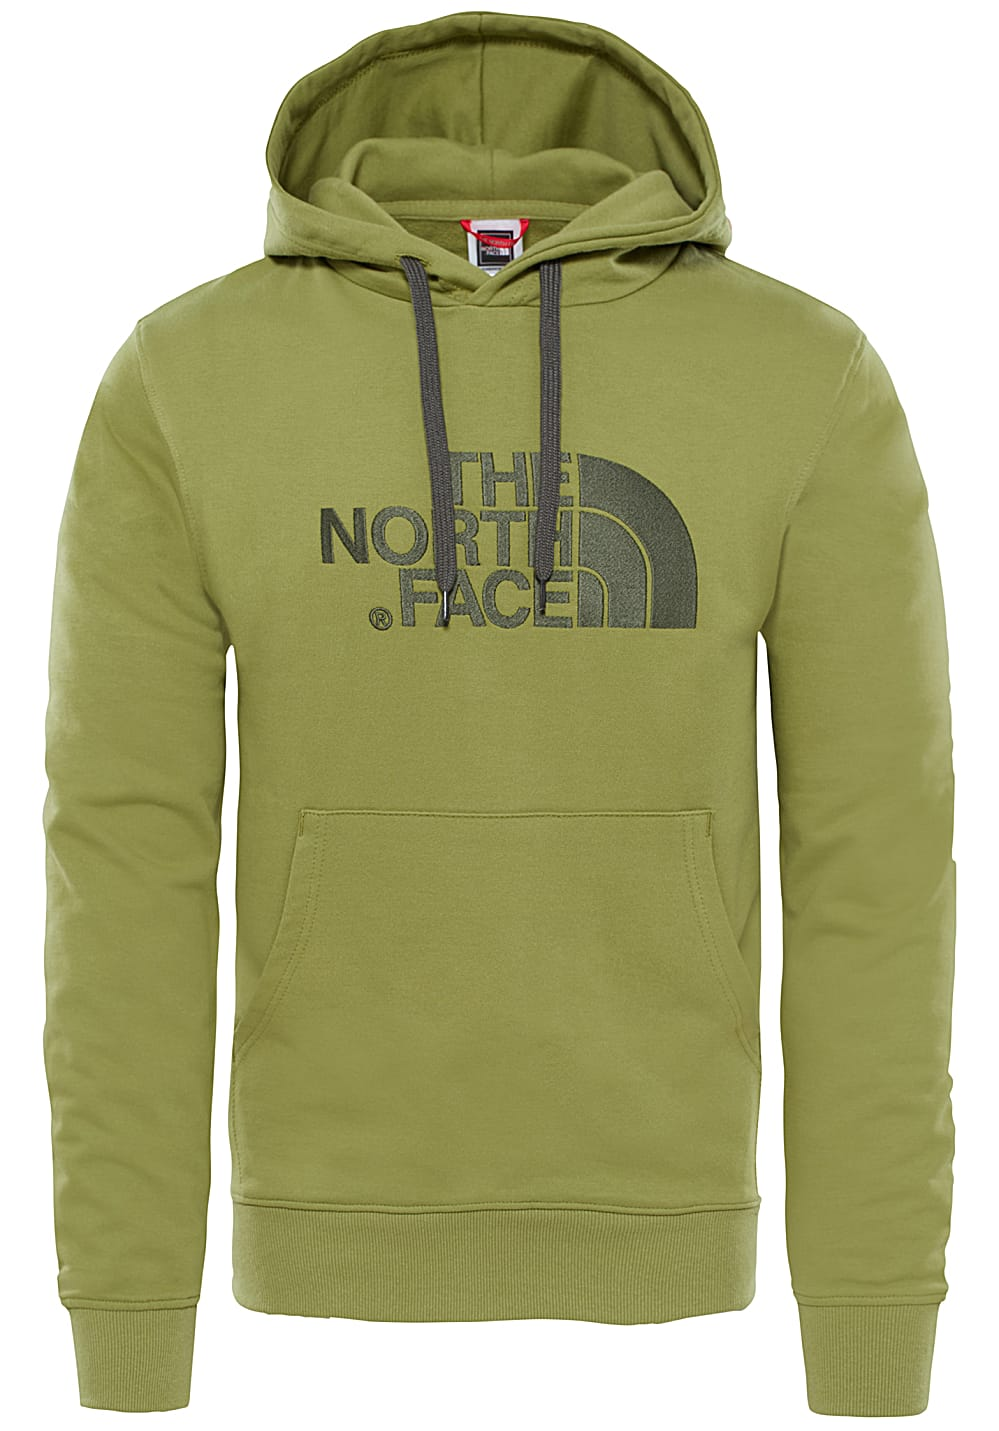 THE NORTH FACE Drew Peak - Kapuzenpullover für Herren Grün